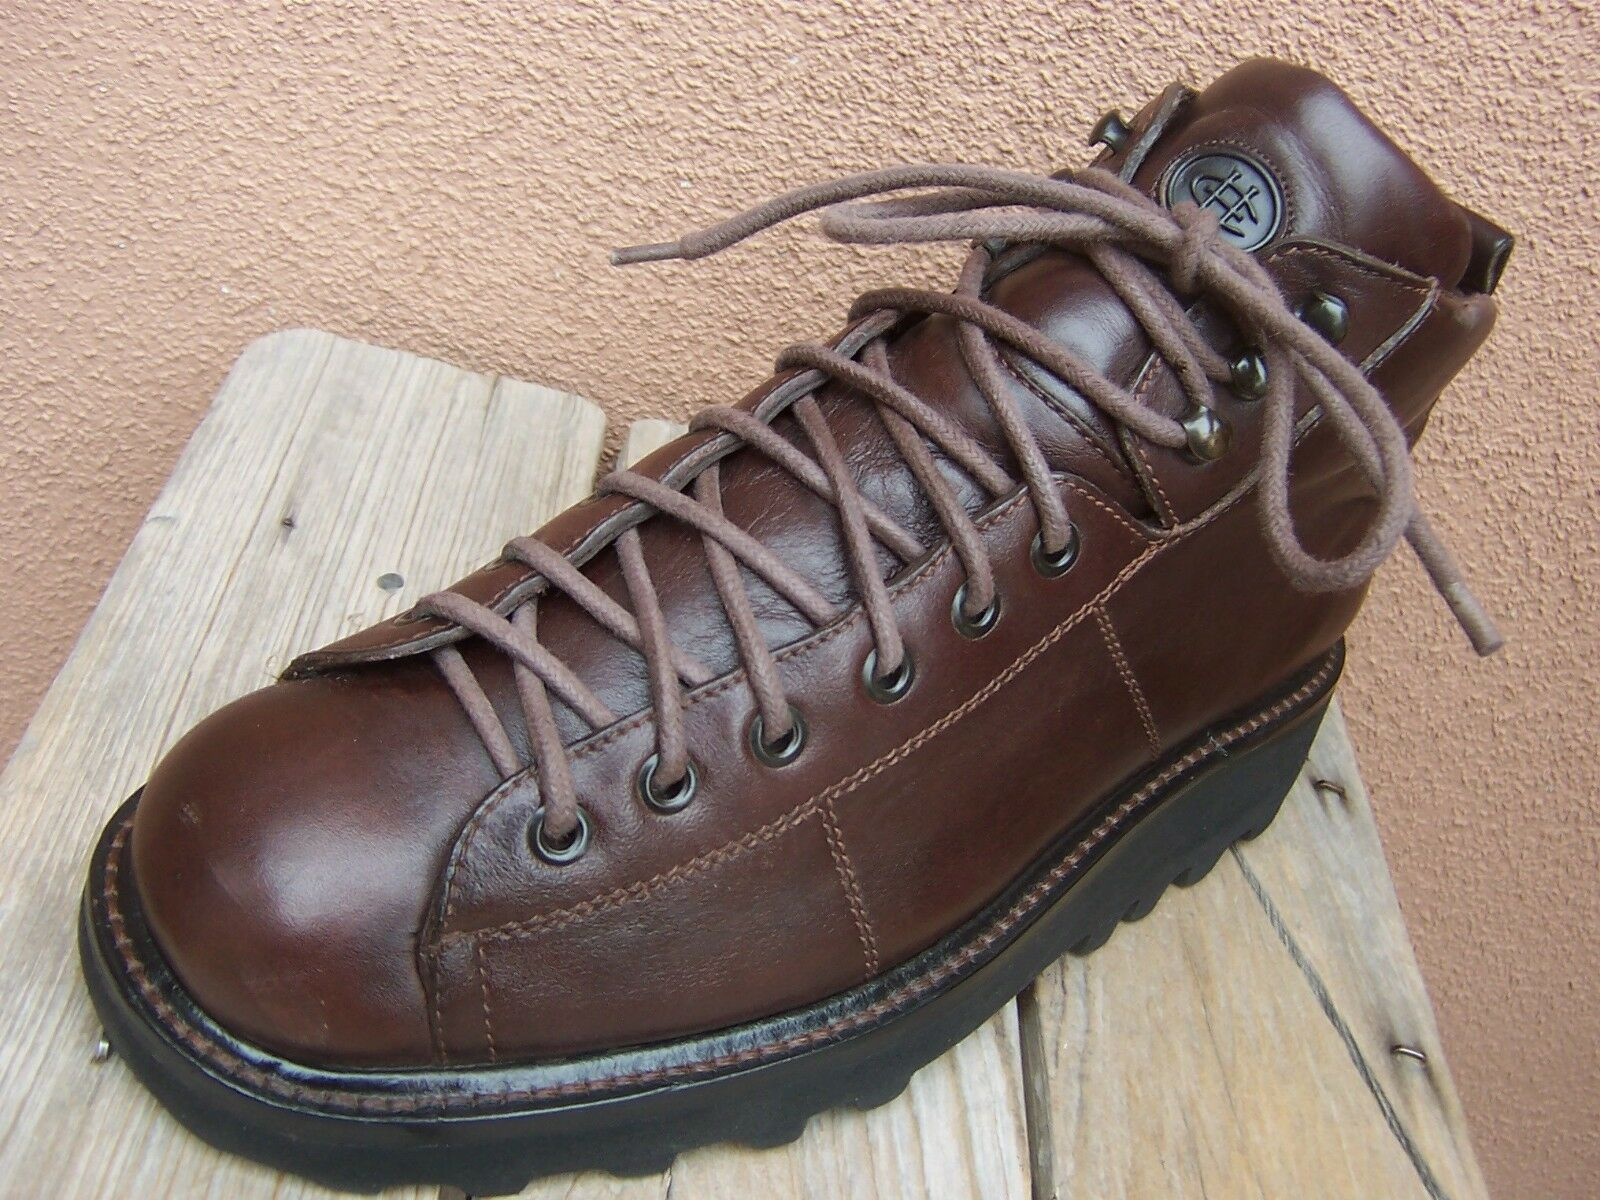 COLE HAAN Mens Casual Leather High Top Trail Hiking Mountain Boots Sz Size 7.5M